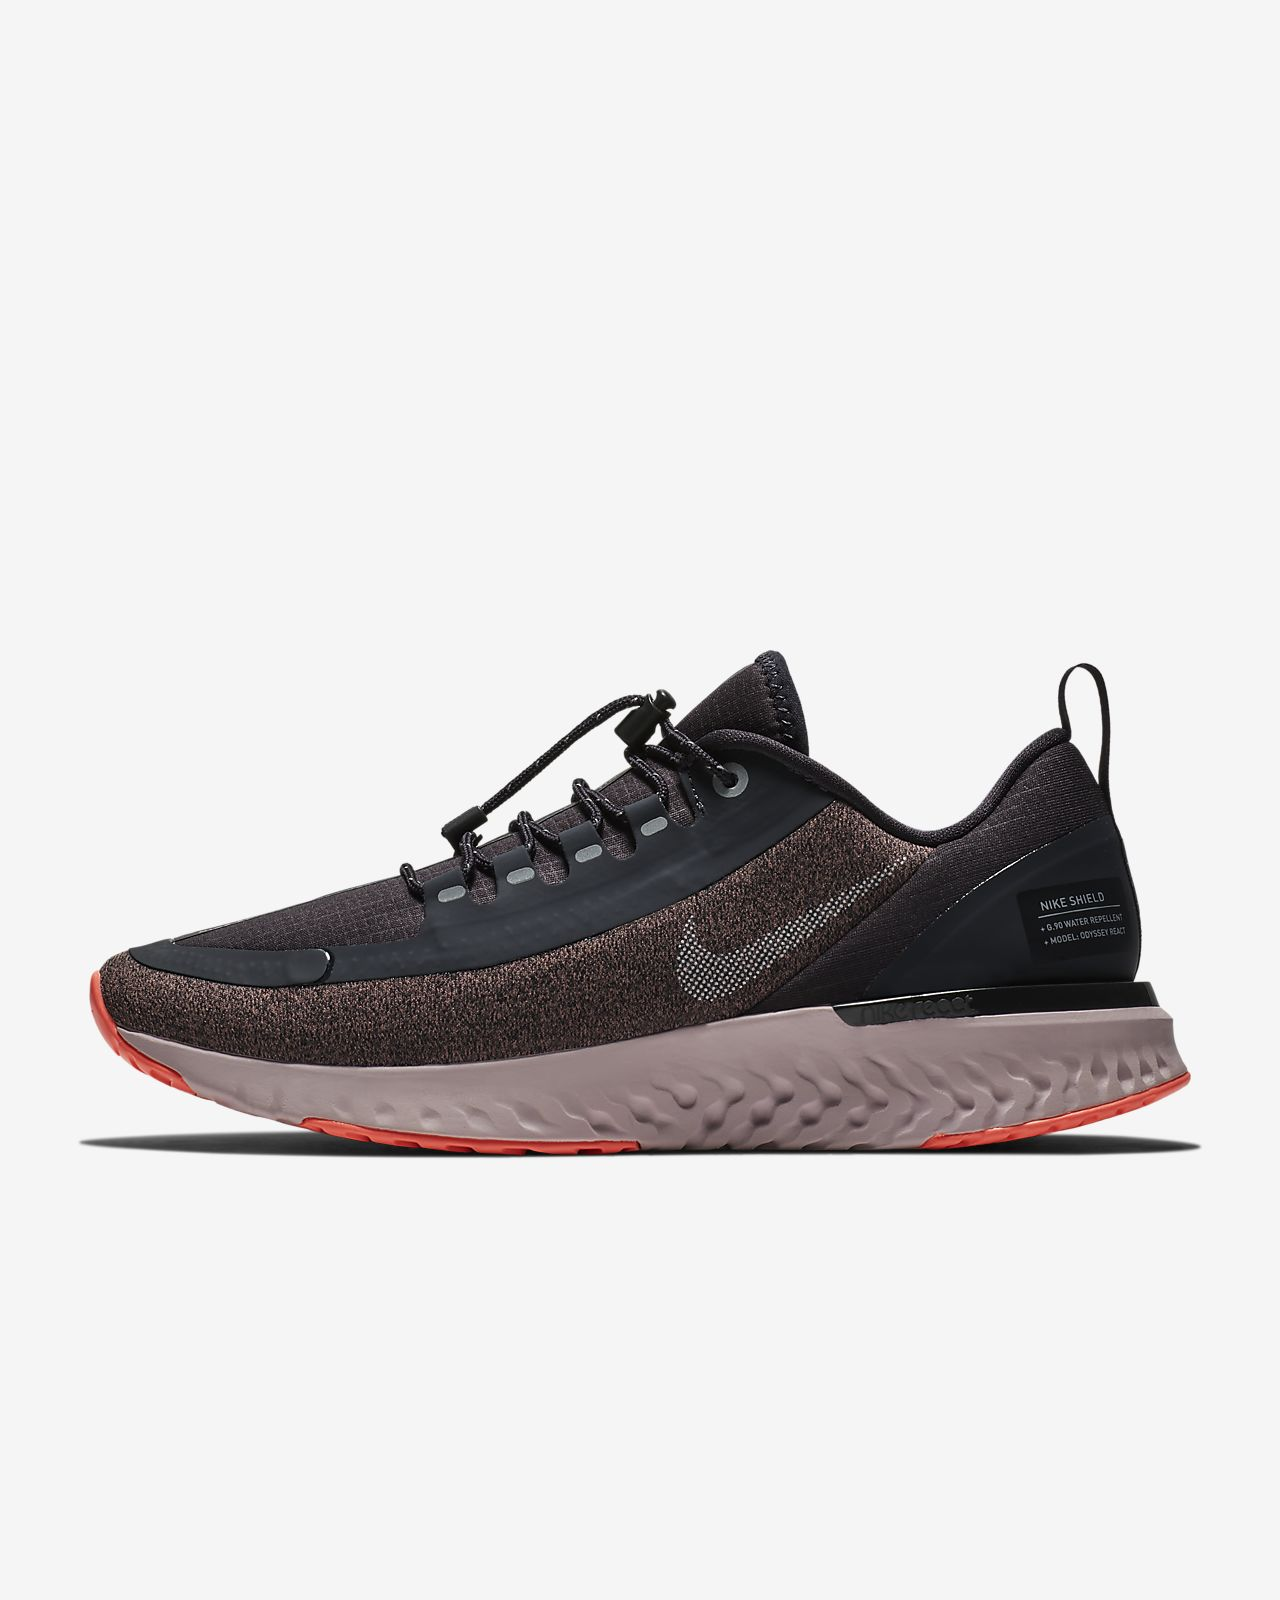 Chaussure de running Nike Odyssey React Shield Water-Repellent pour Femme